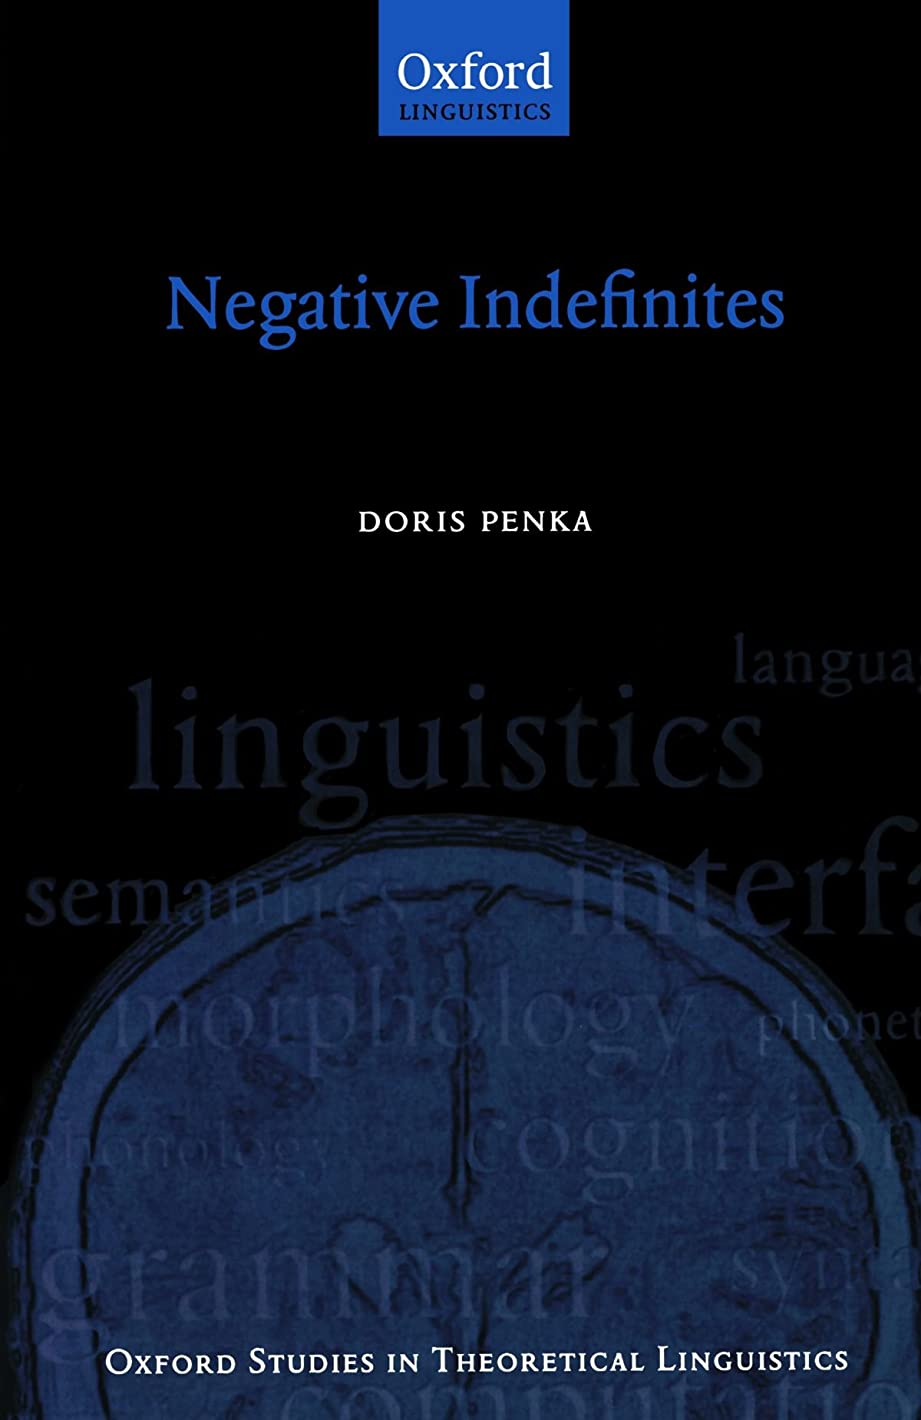 意図する動機付けるブルゴーニュNegative Indefinites (Oxford Studies in Theoretical Linguistics)